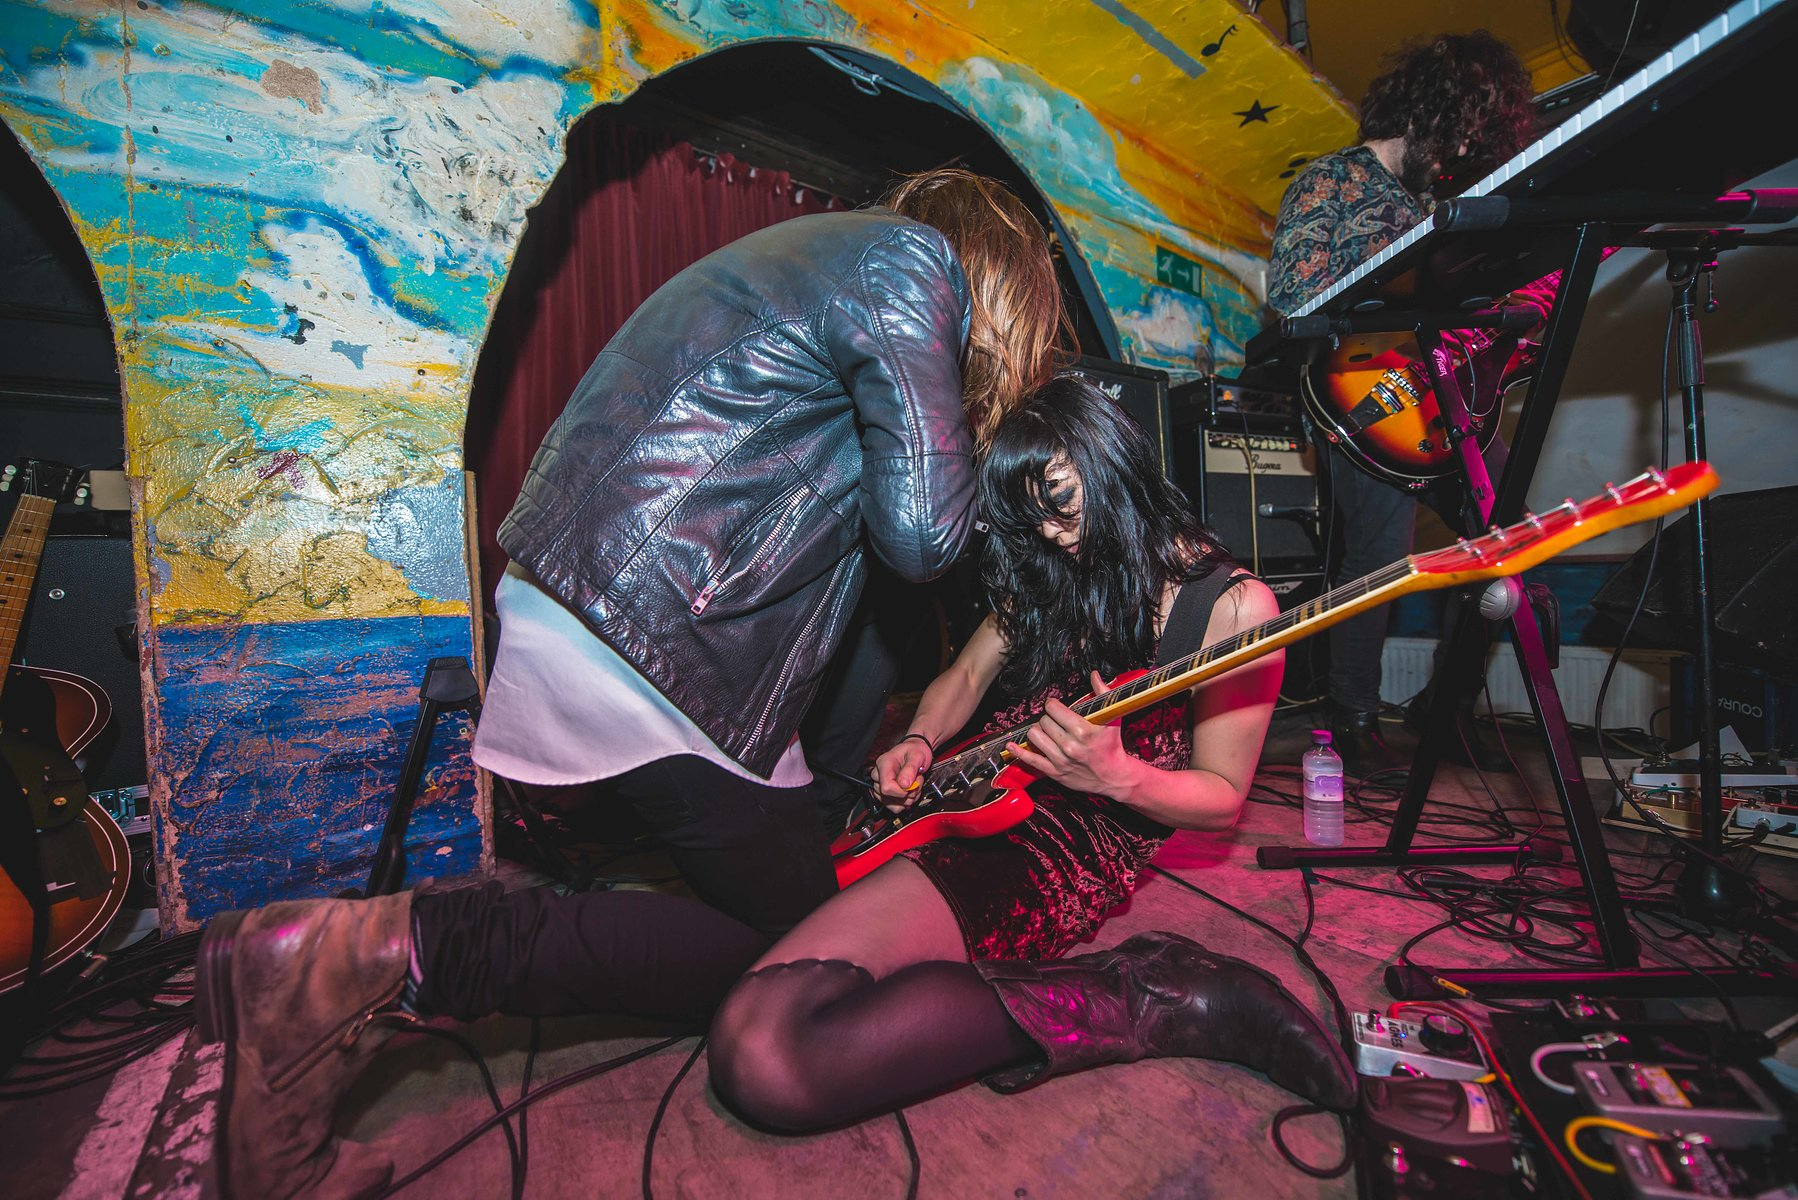 Saint Agnes supporting Death Valley Girls at the Shacklewell Arms on February 3rd, 2017